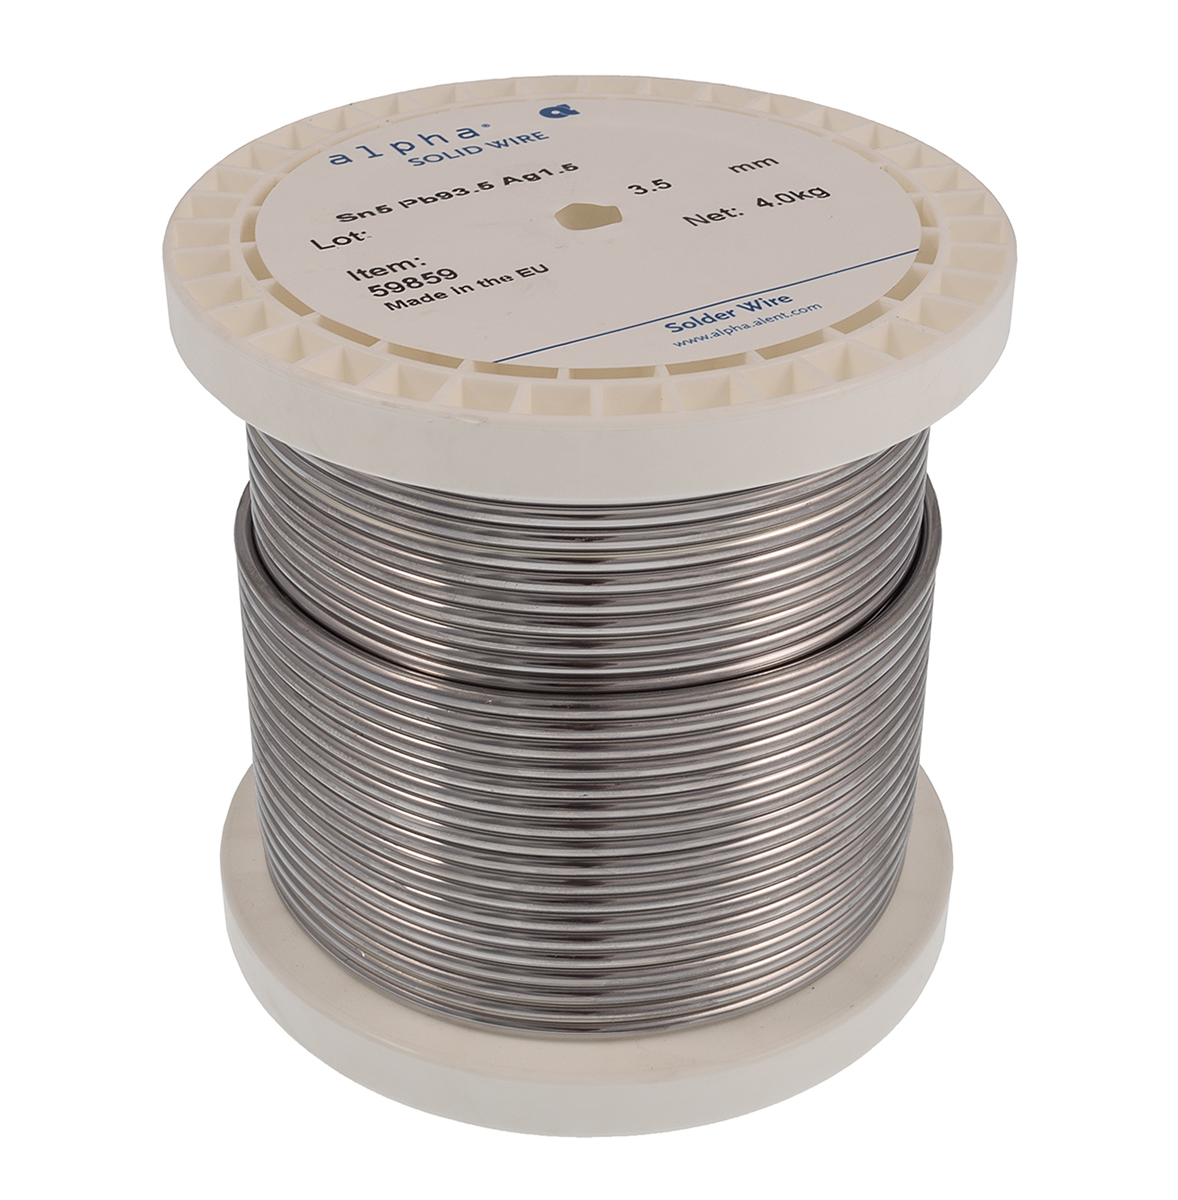 Alpha Metals, LS4 High Temperature Solid Feed Wire, The ... on